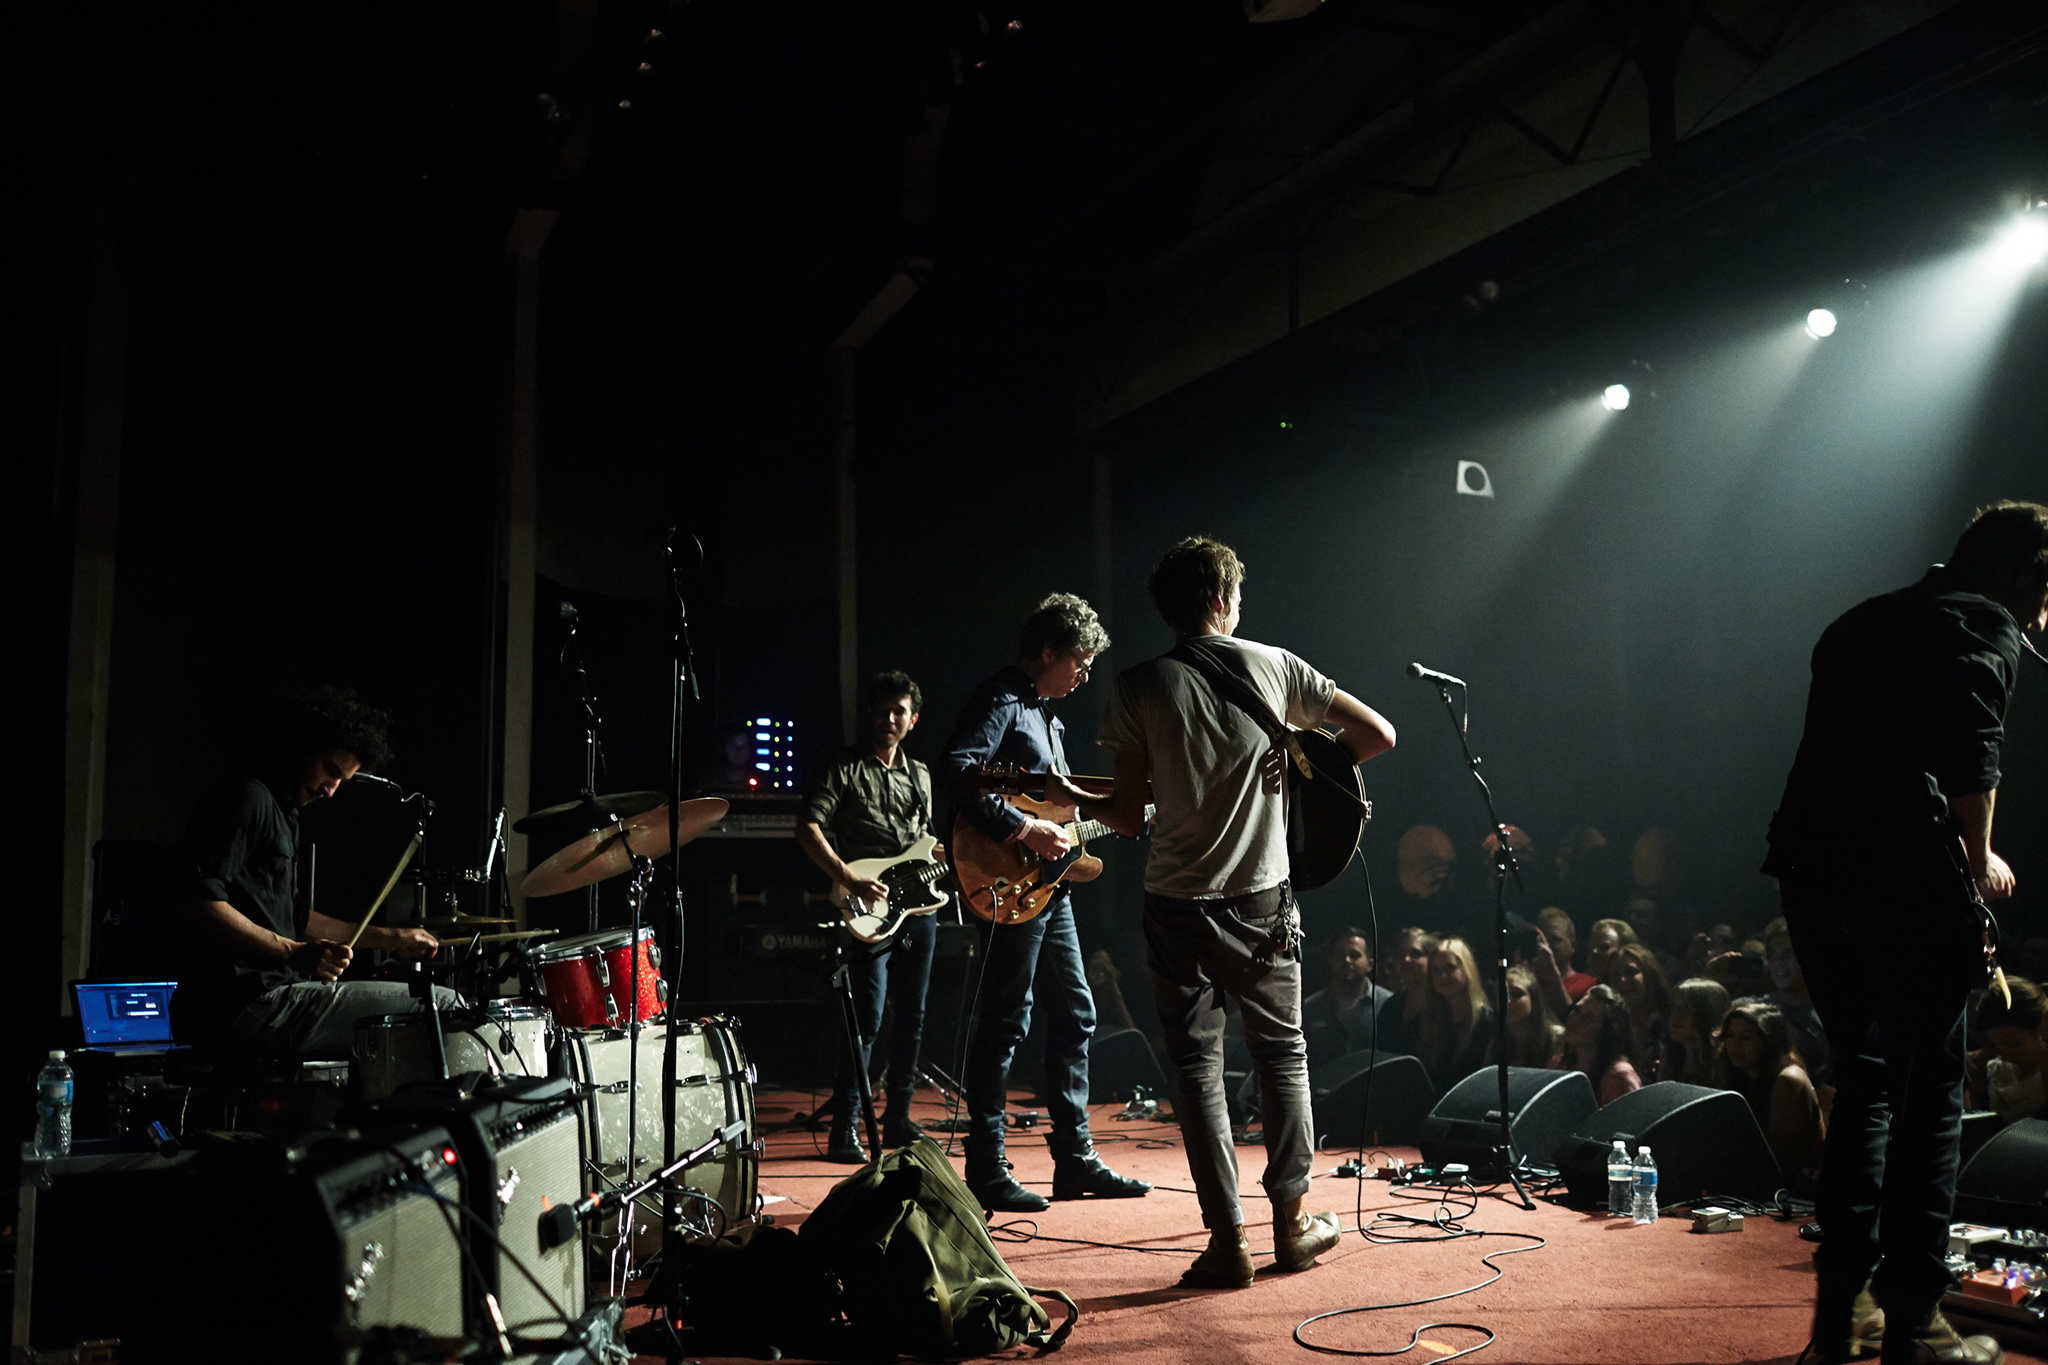 Augustana_At_The_Varsity_Theater_Minneapolis_2014_Photo_By_Joe_Lemke_23.JPG